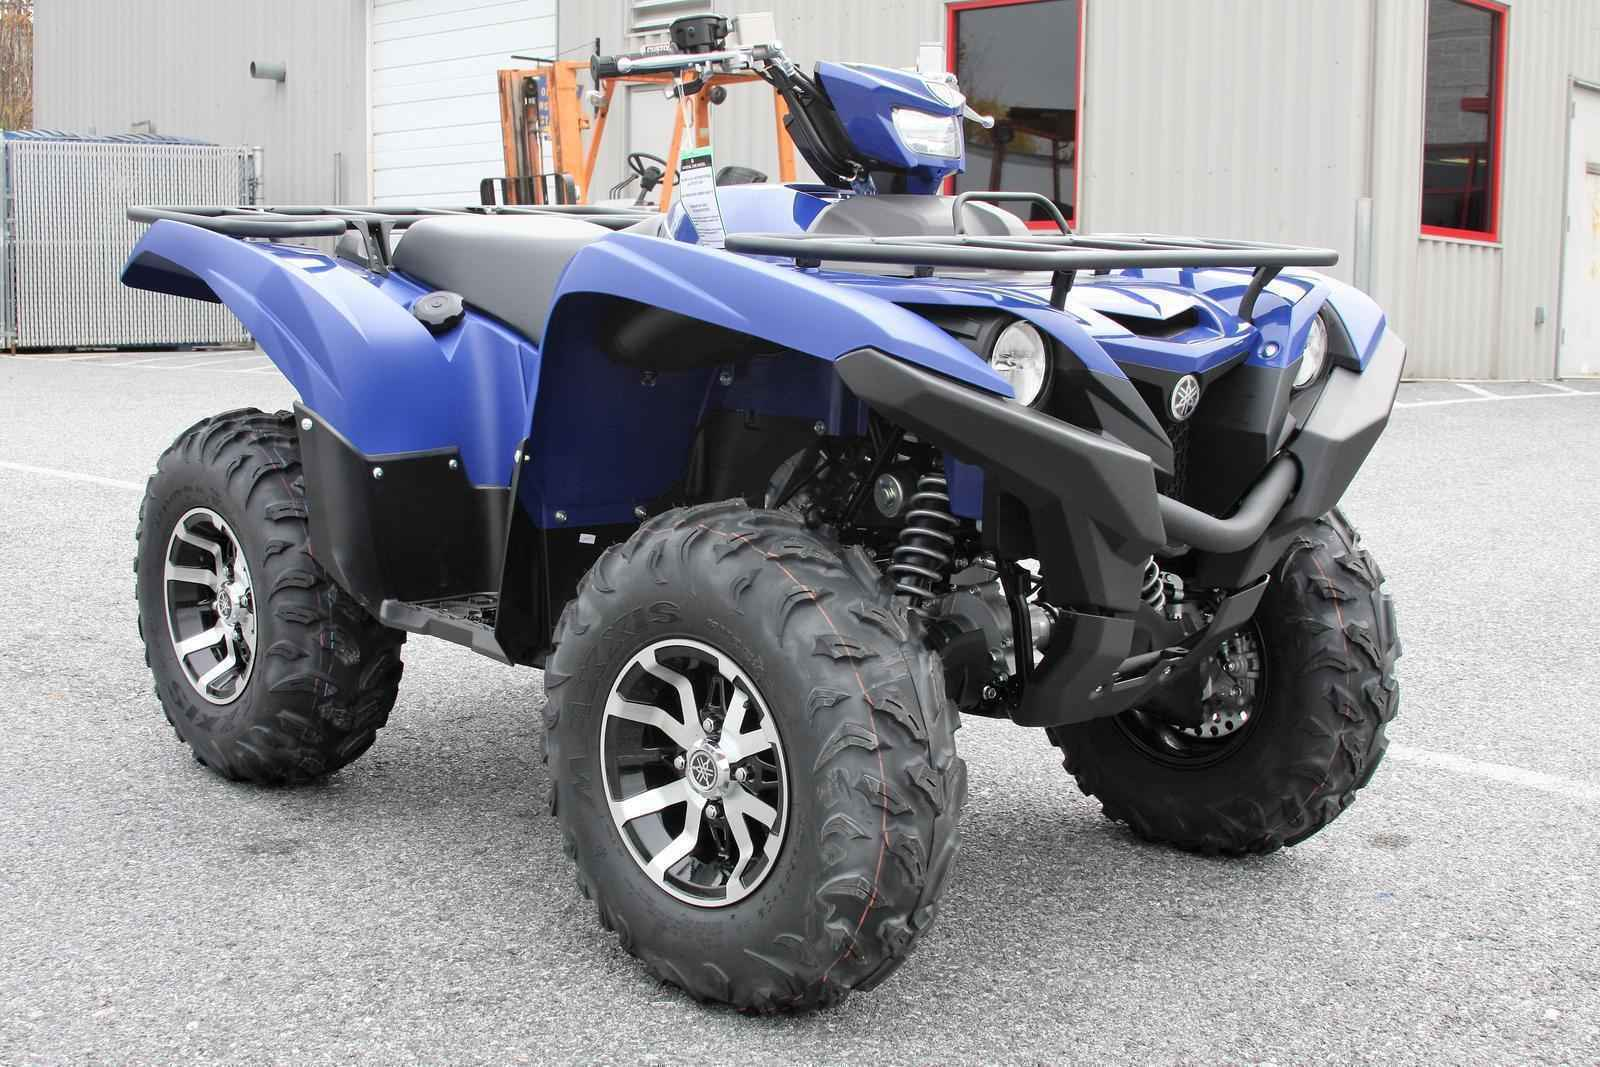 2017 Yamaha Grizzly >> New 2017 Yamaha Grizzly 700 Eps Atvs For Sale In Pennsylvania On Atvtrades Com